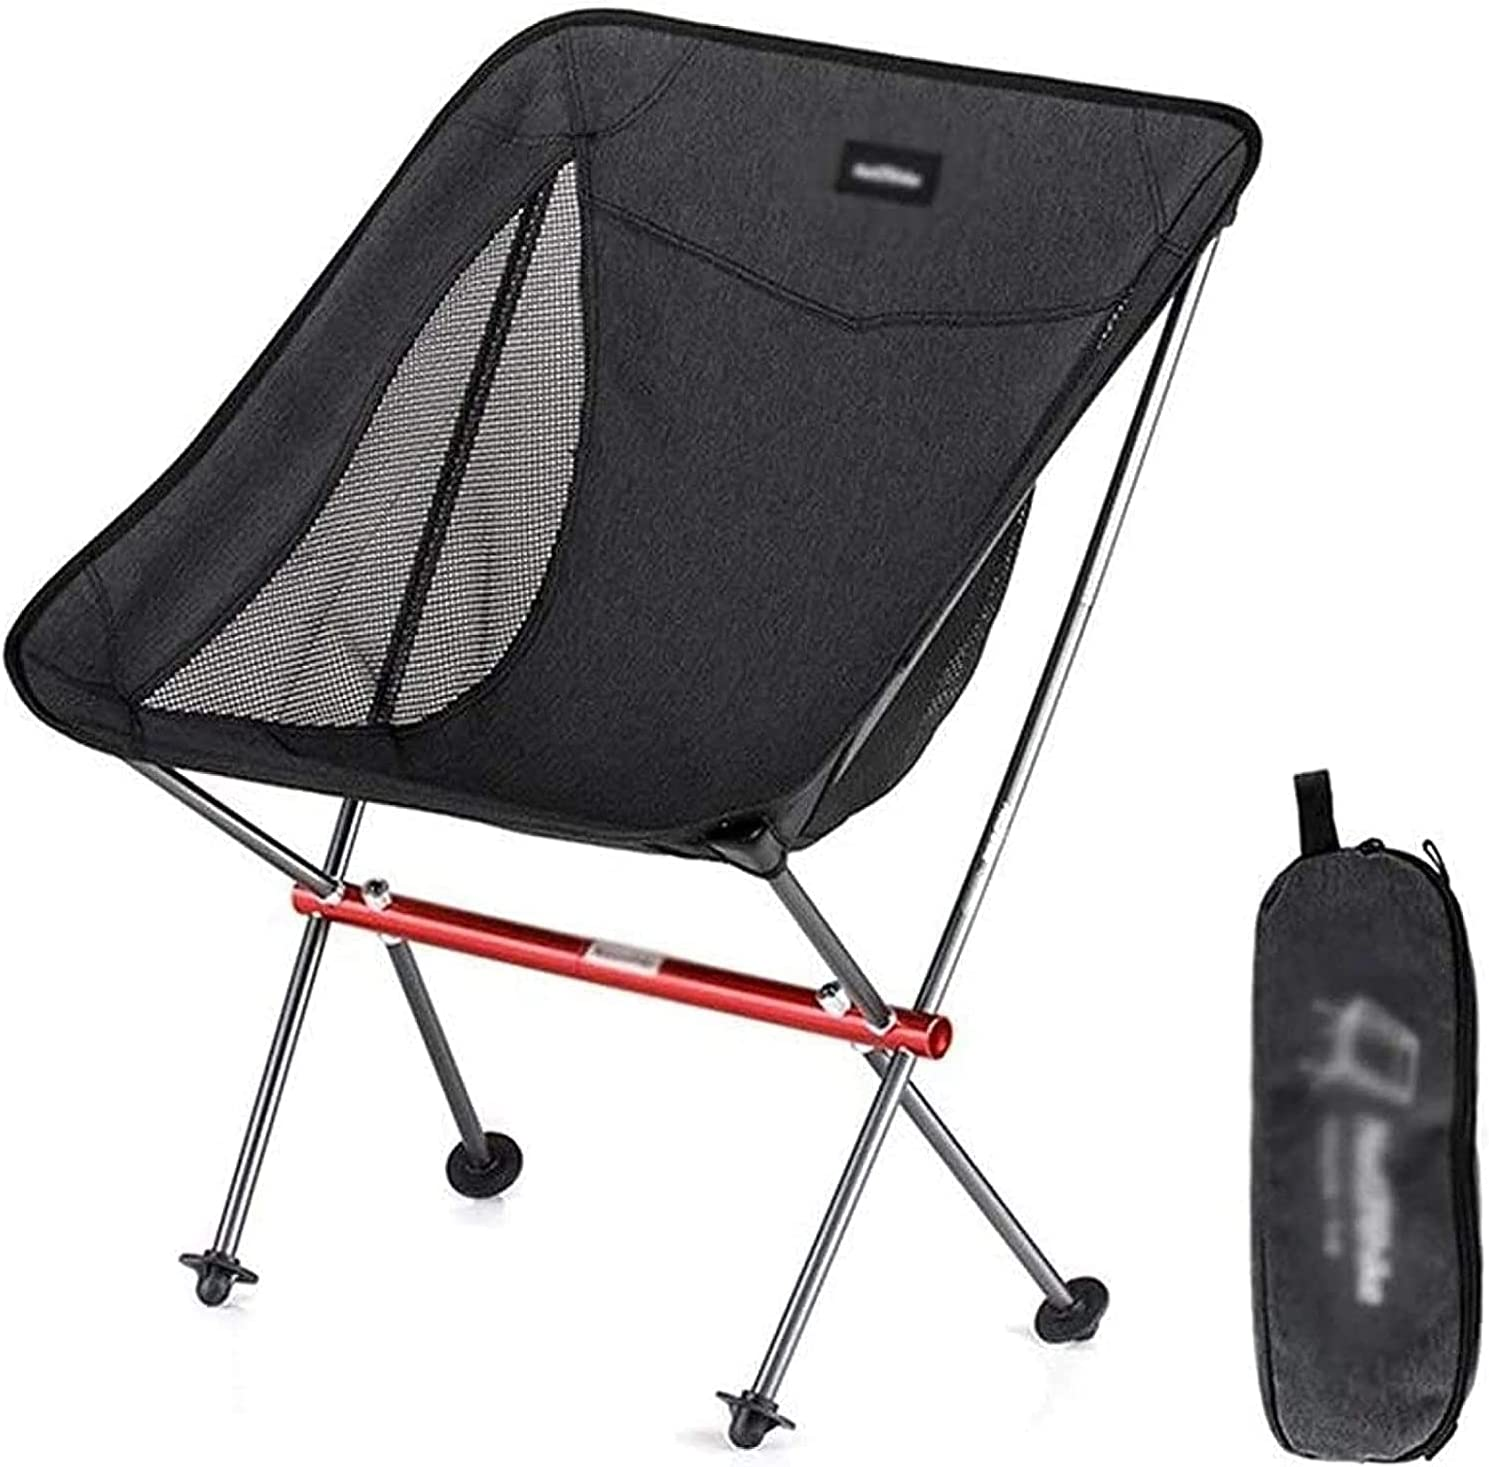 YGCBL Camping Chairs, Comfortable Breathable Camping Chairs Easy